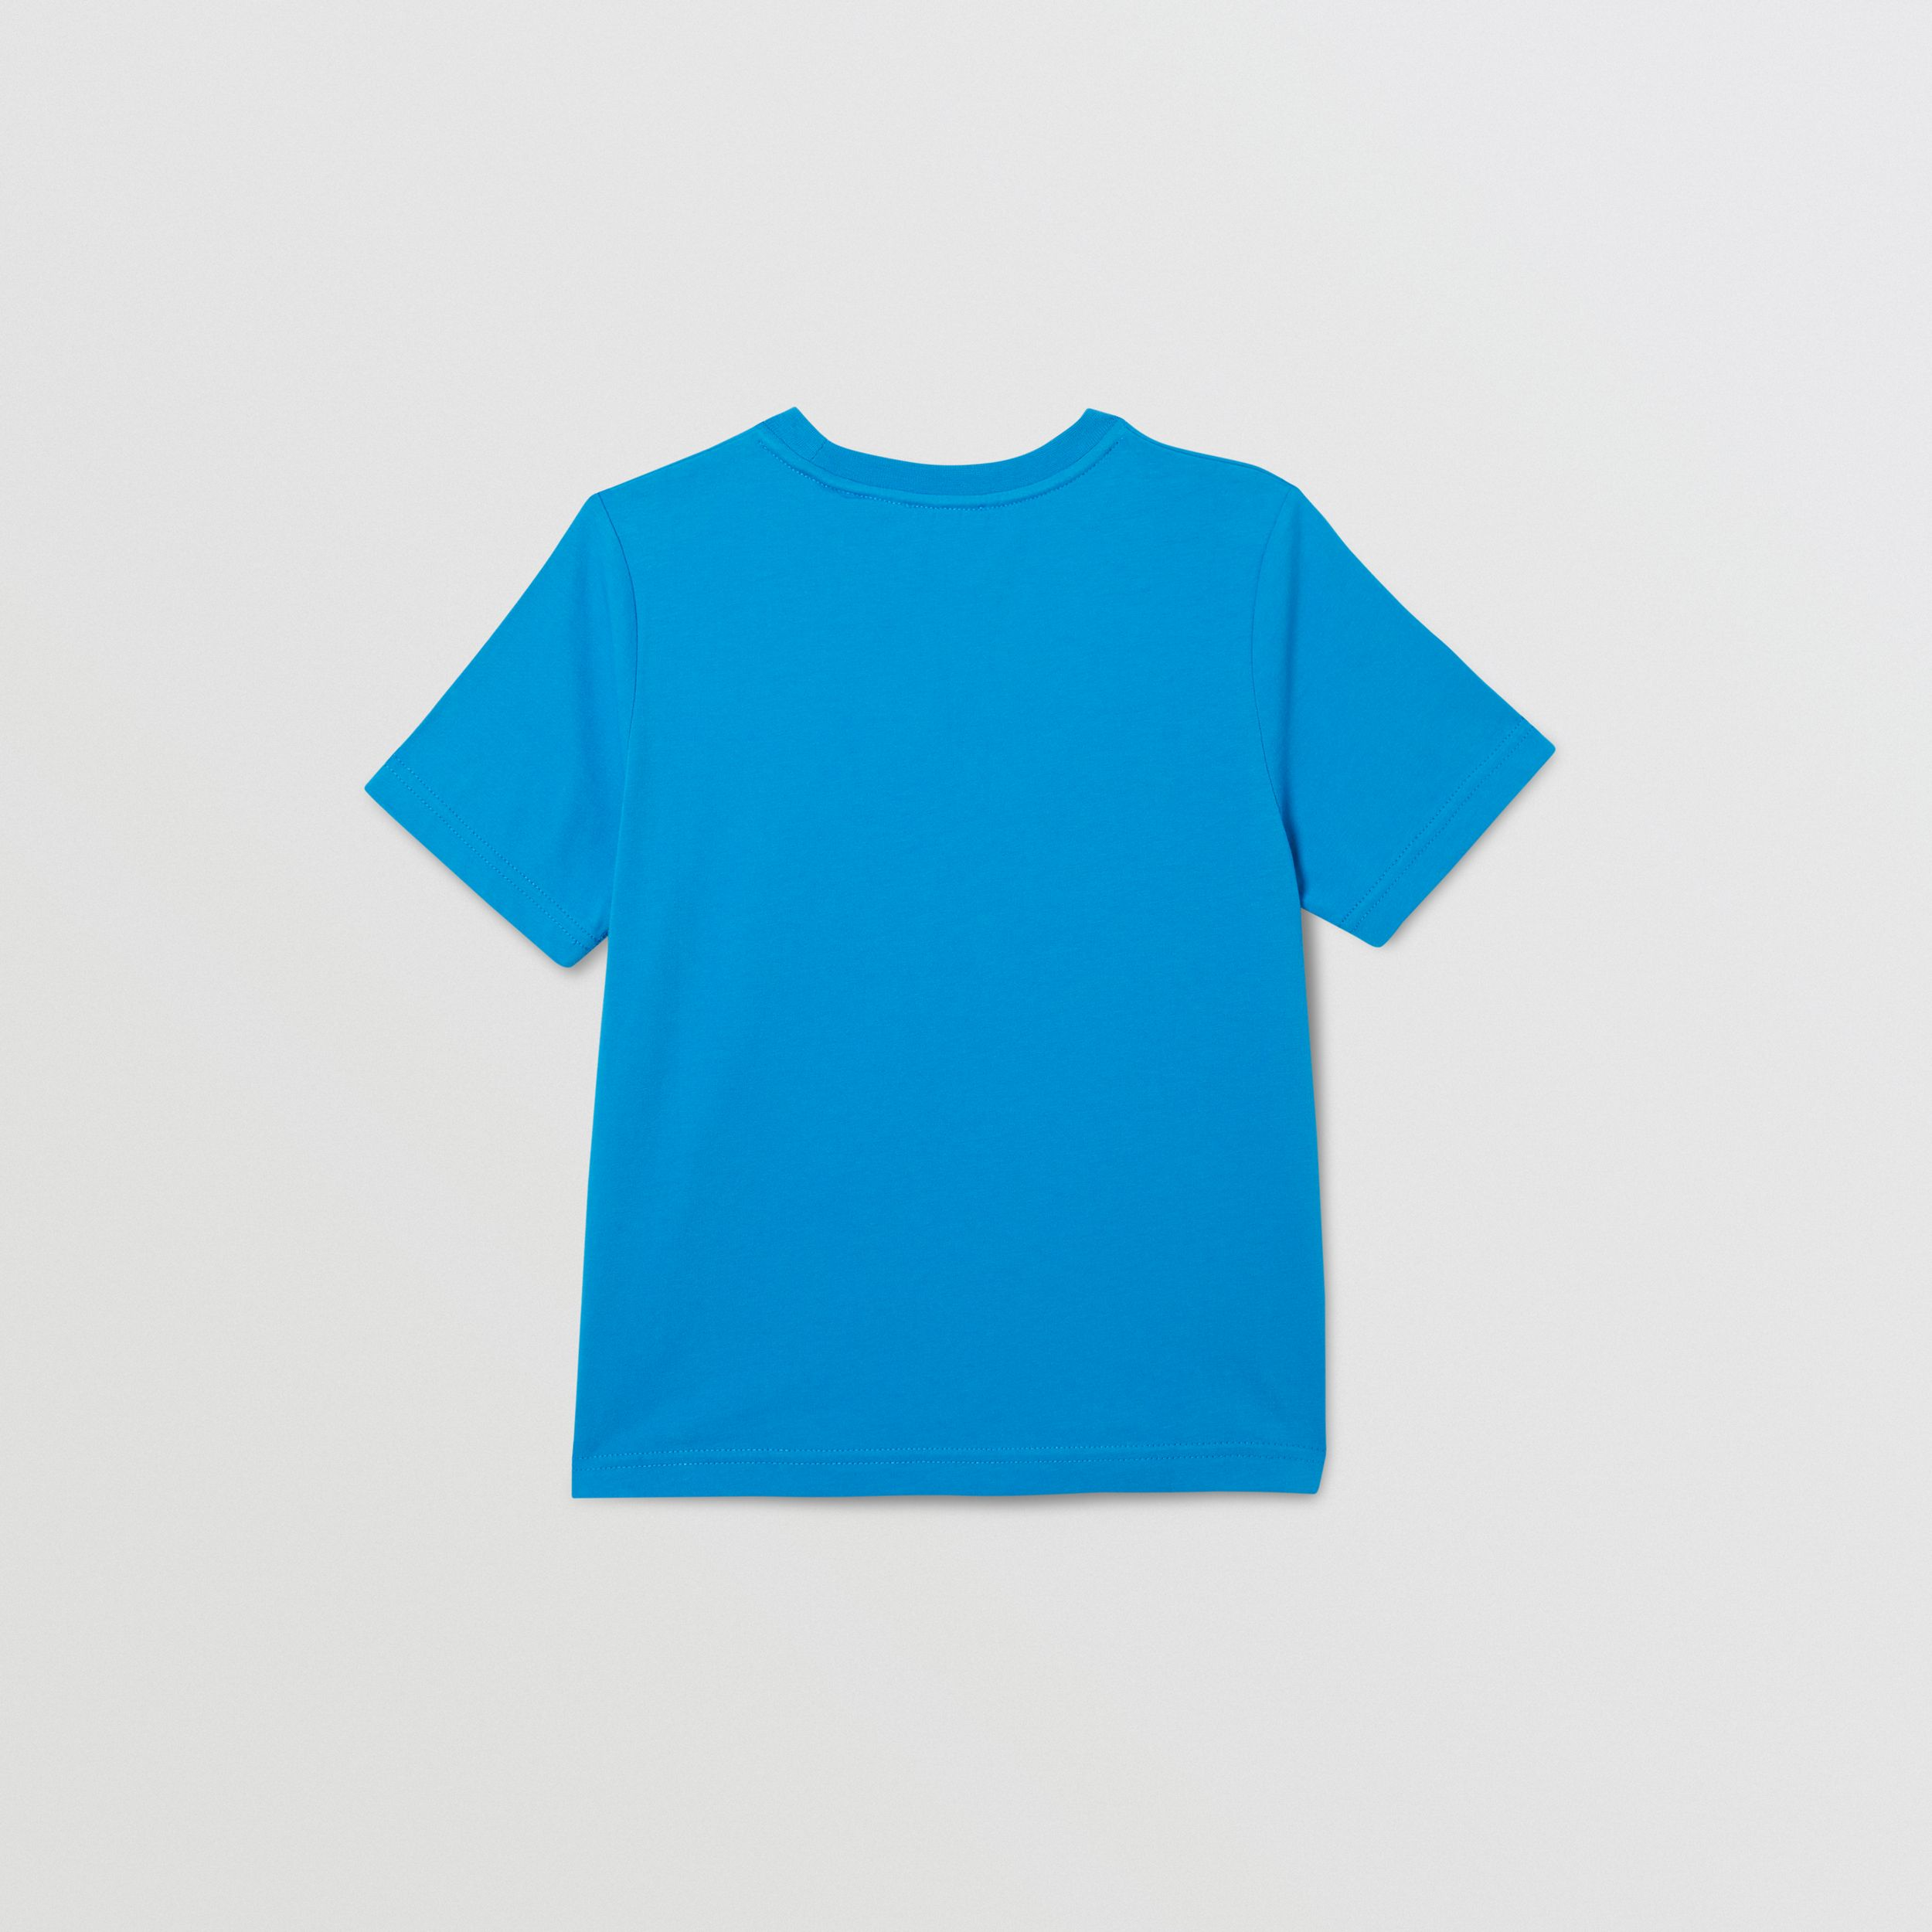 Logo Graphic Print Cotton T-shirt in Cerulean Blue | Burberry Hong Kong S.A.R. - 4